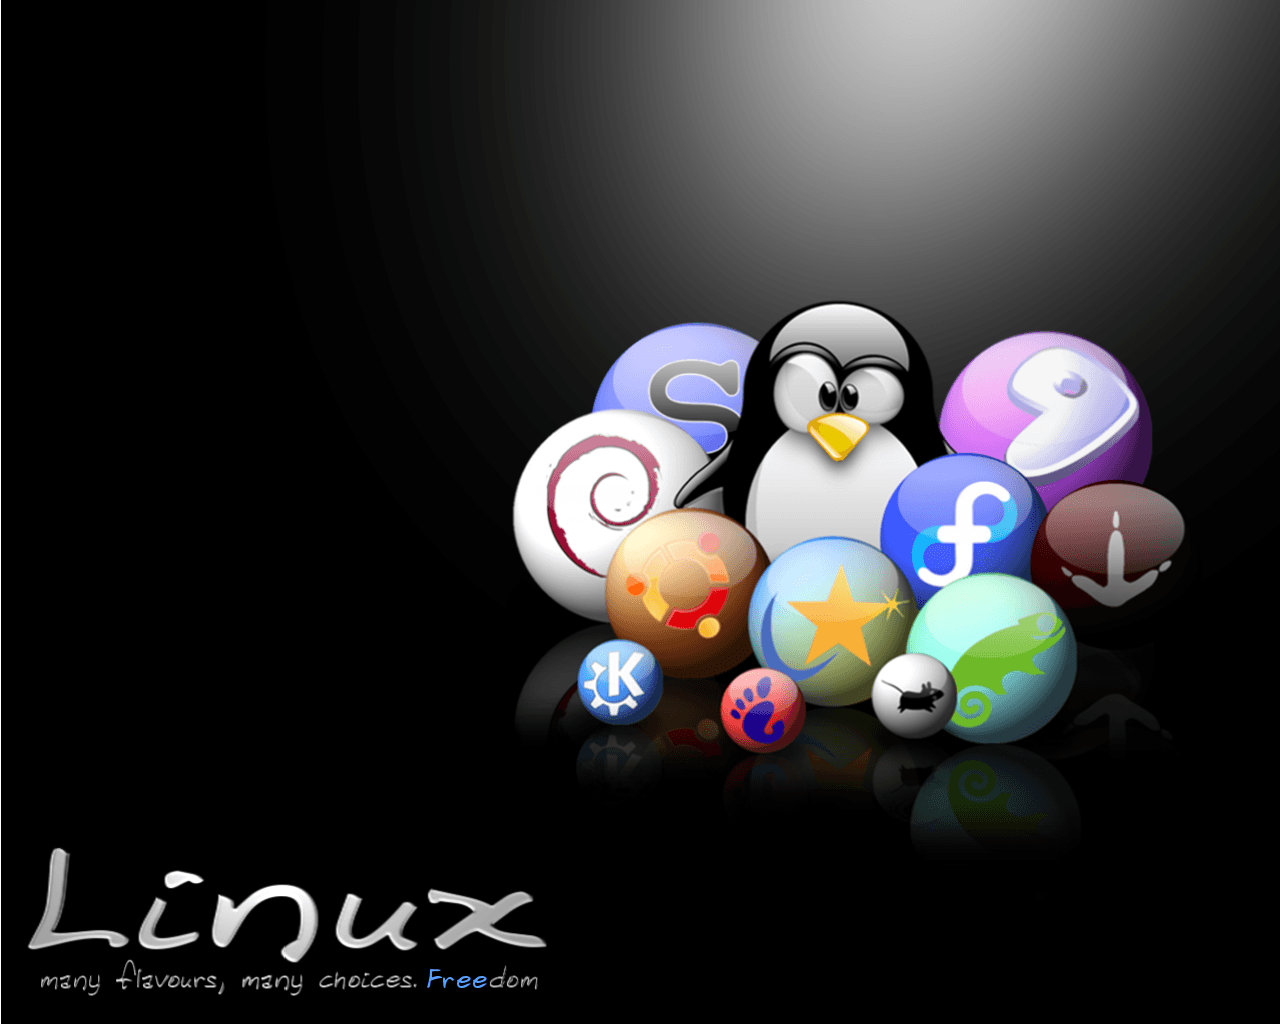 best linux wallpapers wallpaper cave